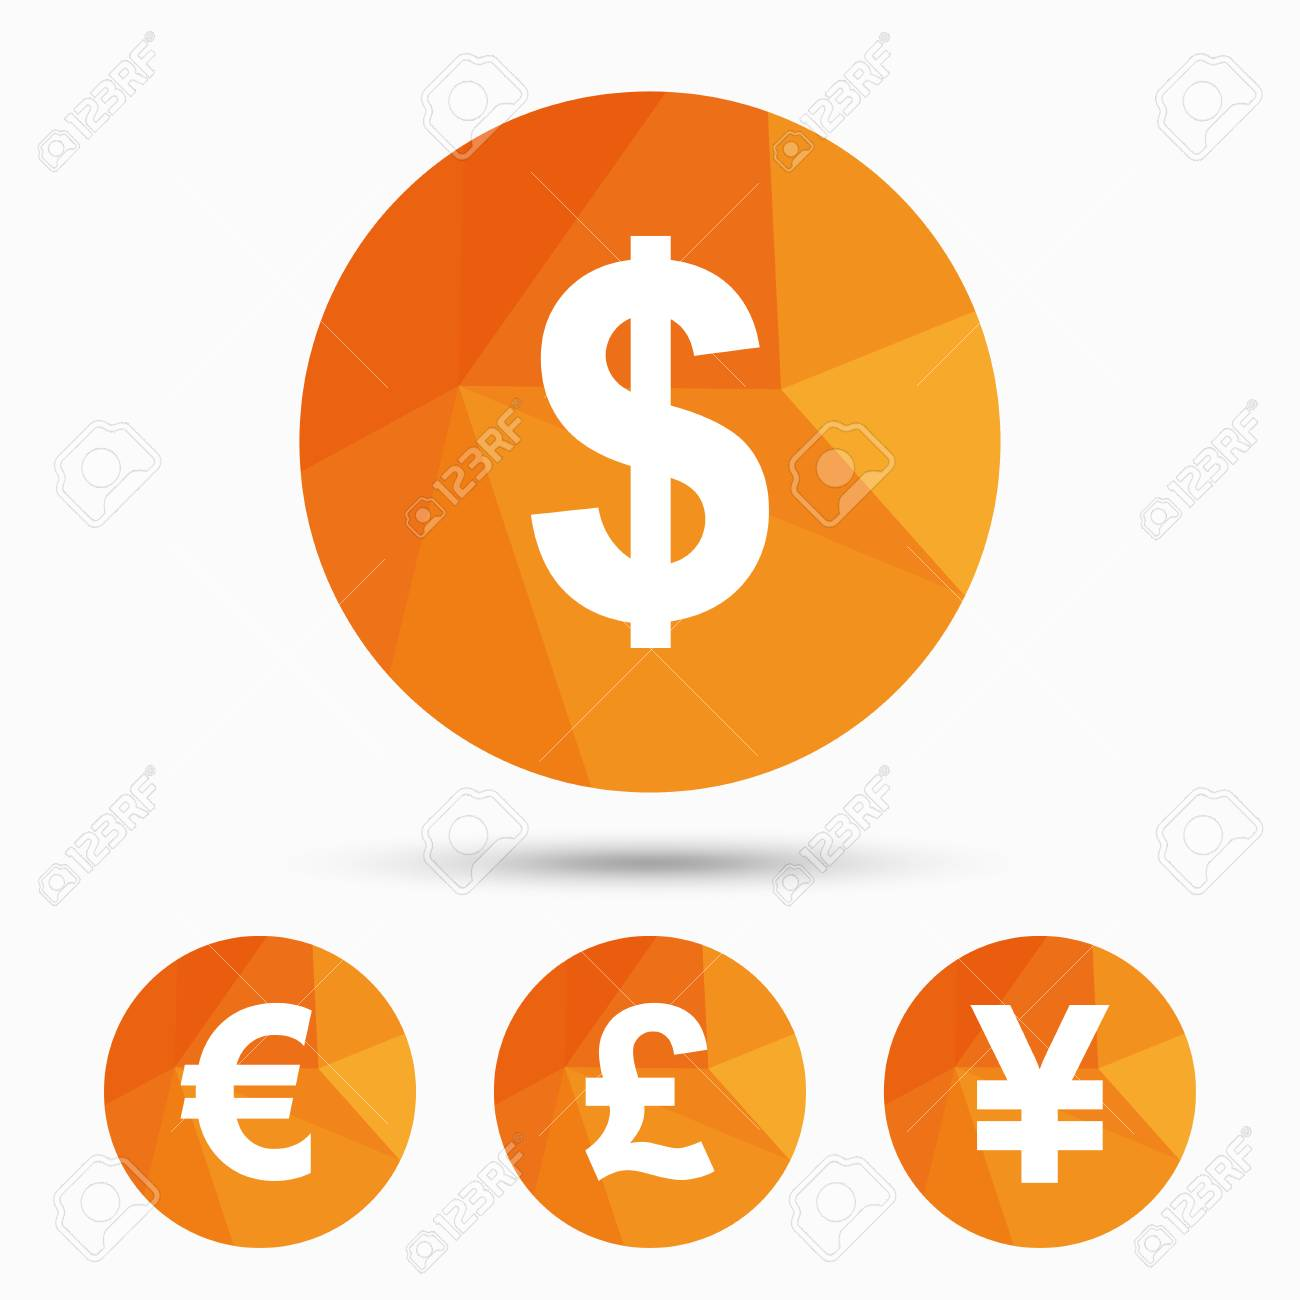 Dollar euro pound and yen currency icons usd eur gbp and dollar euro pound and yen currency icons usd eur gbp and biocorpaavc Gallery